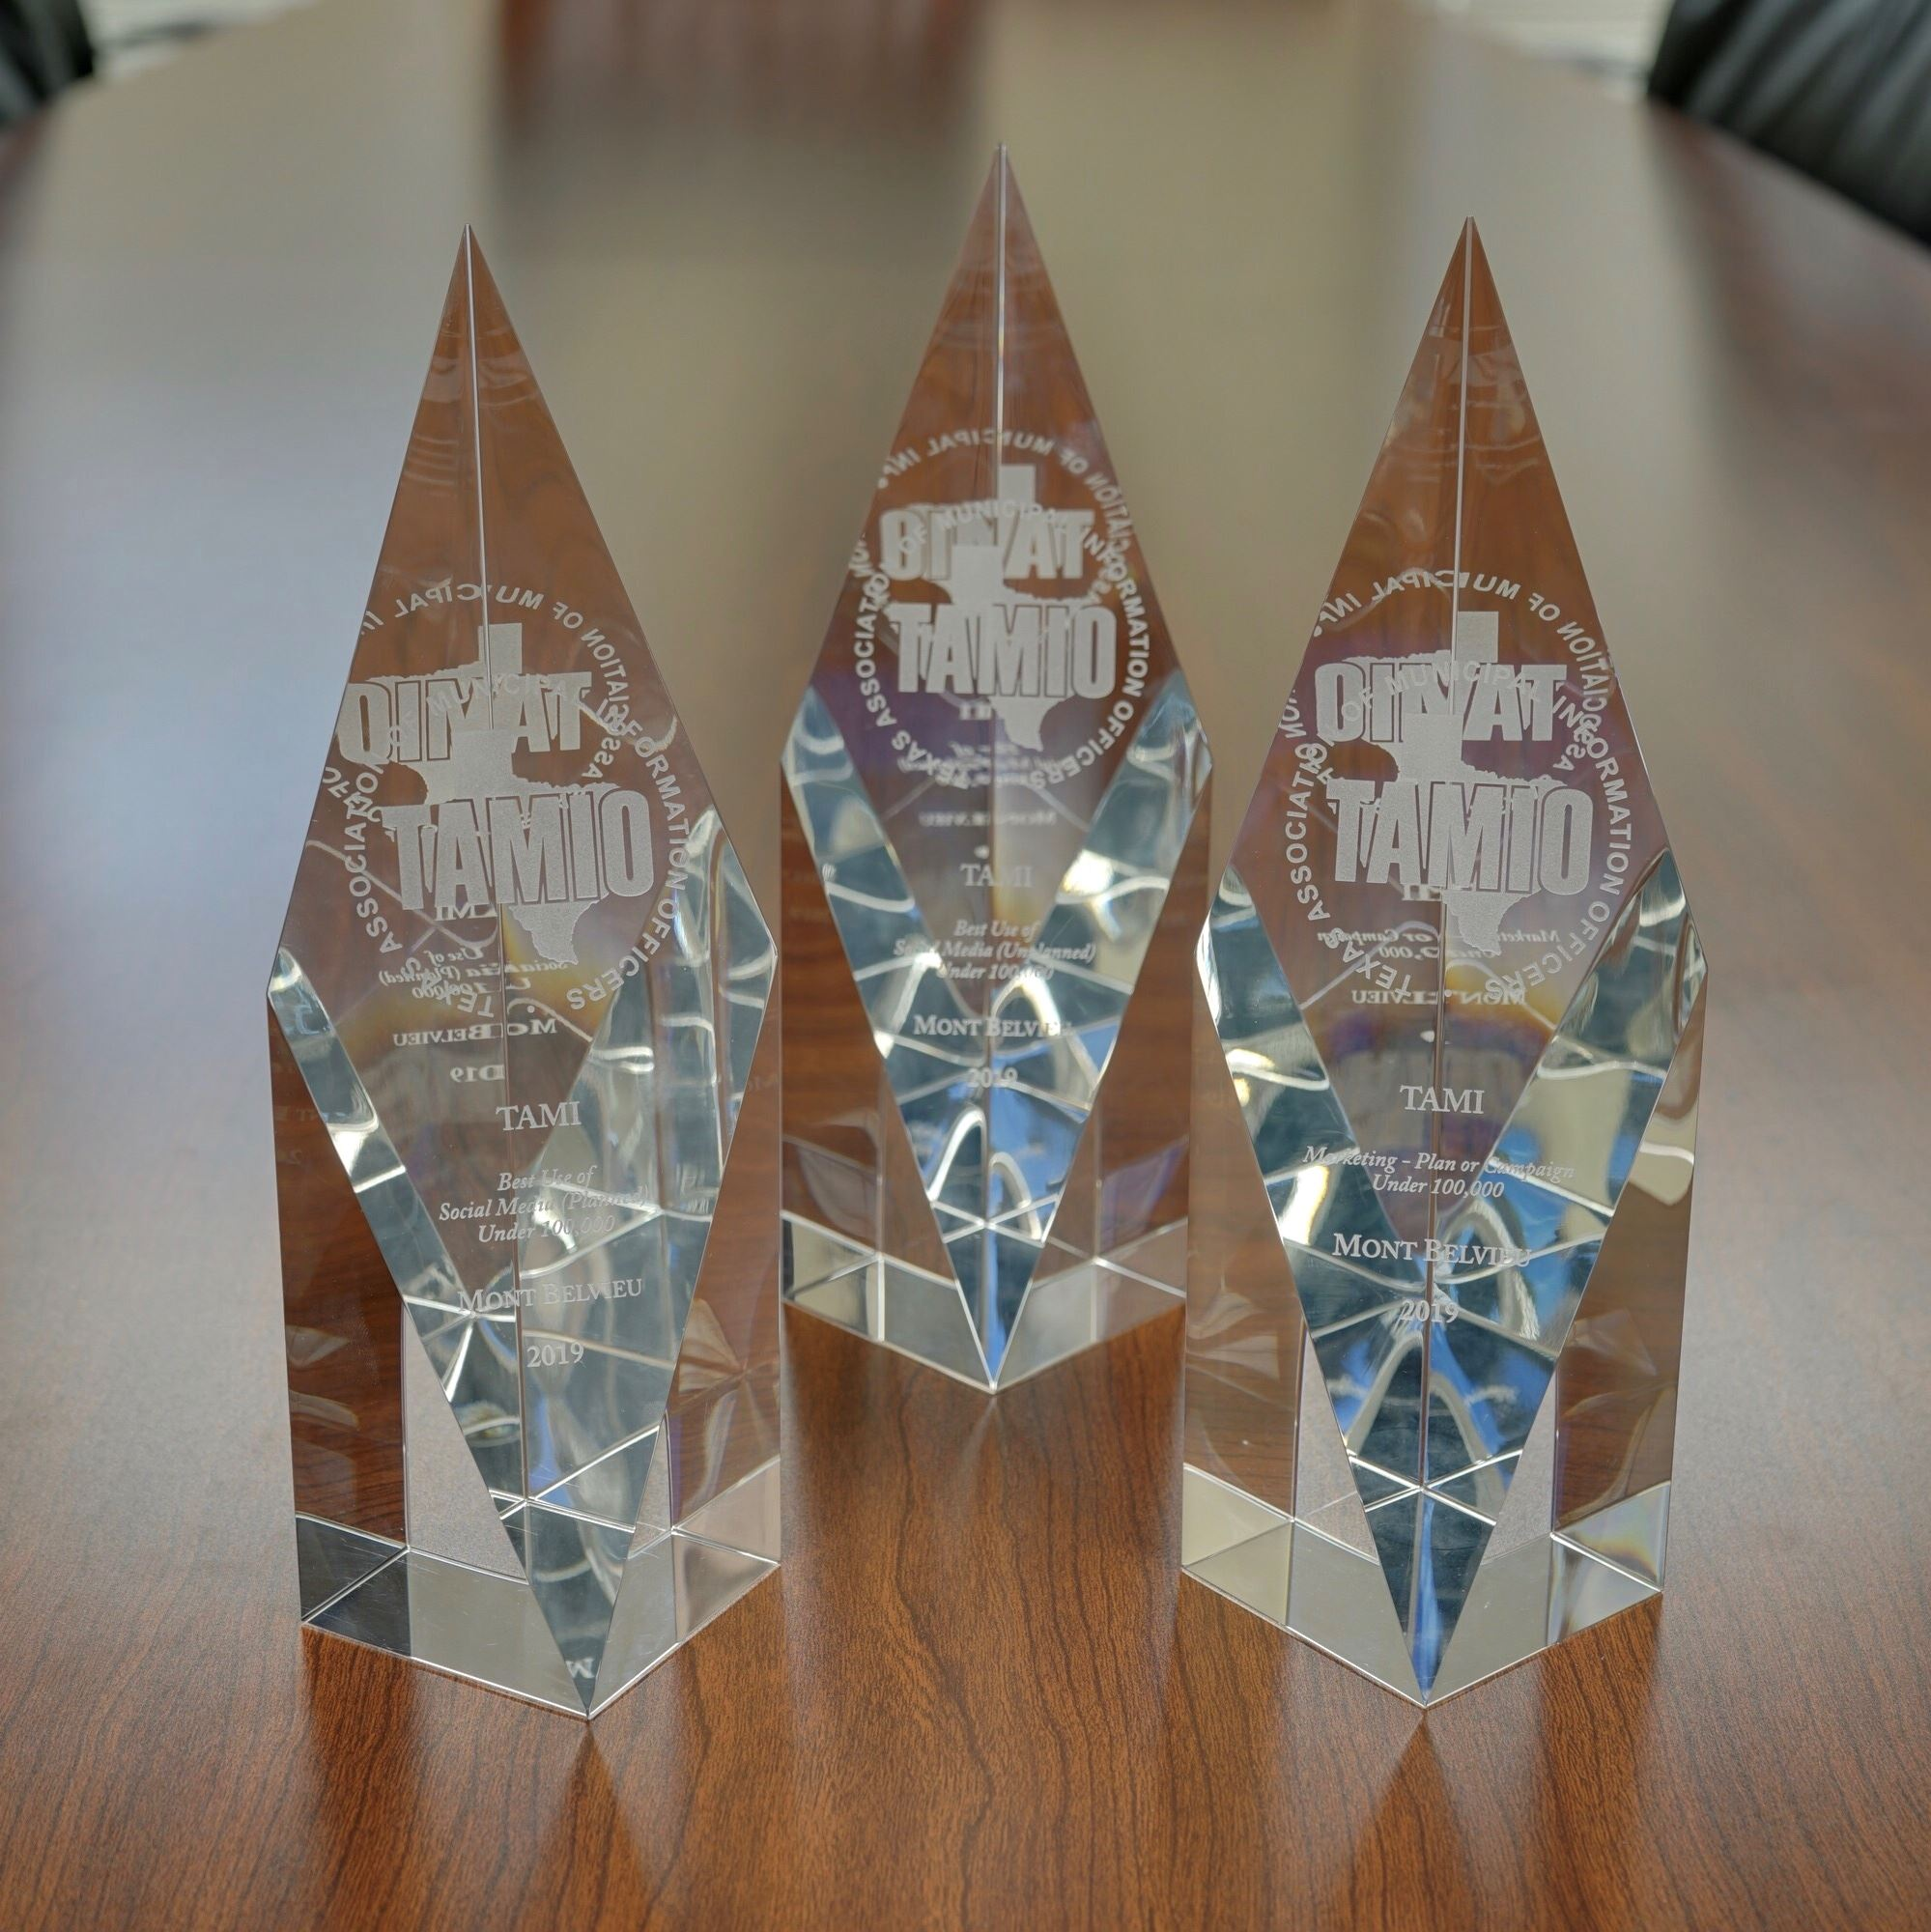 Three clear glass TAMI Awards sit on a table